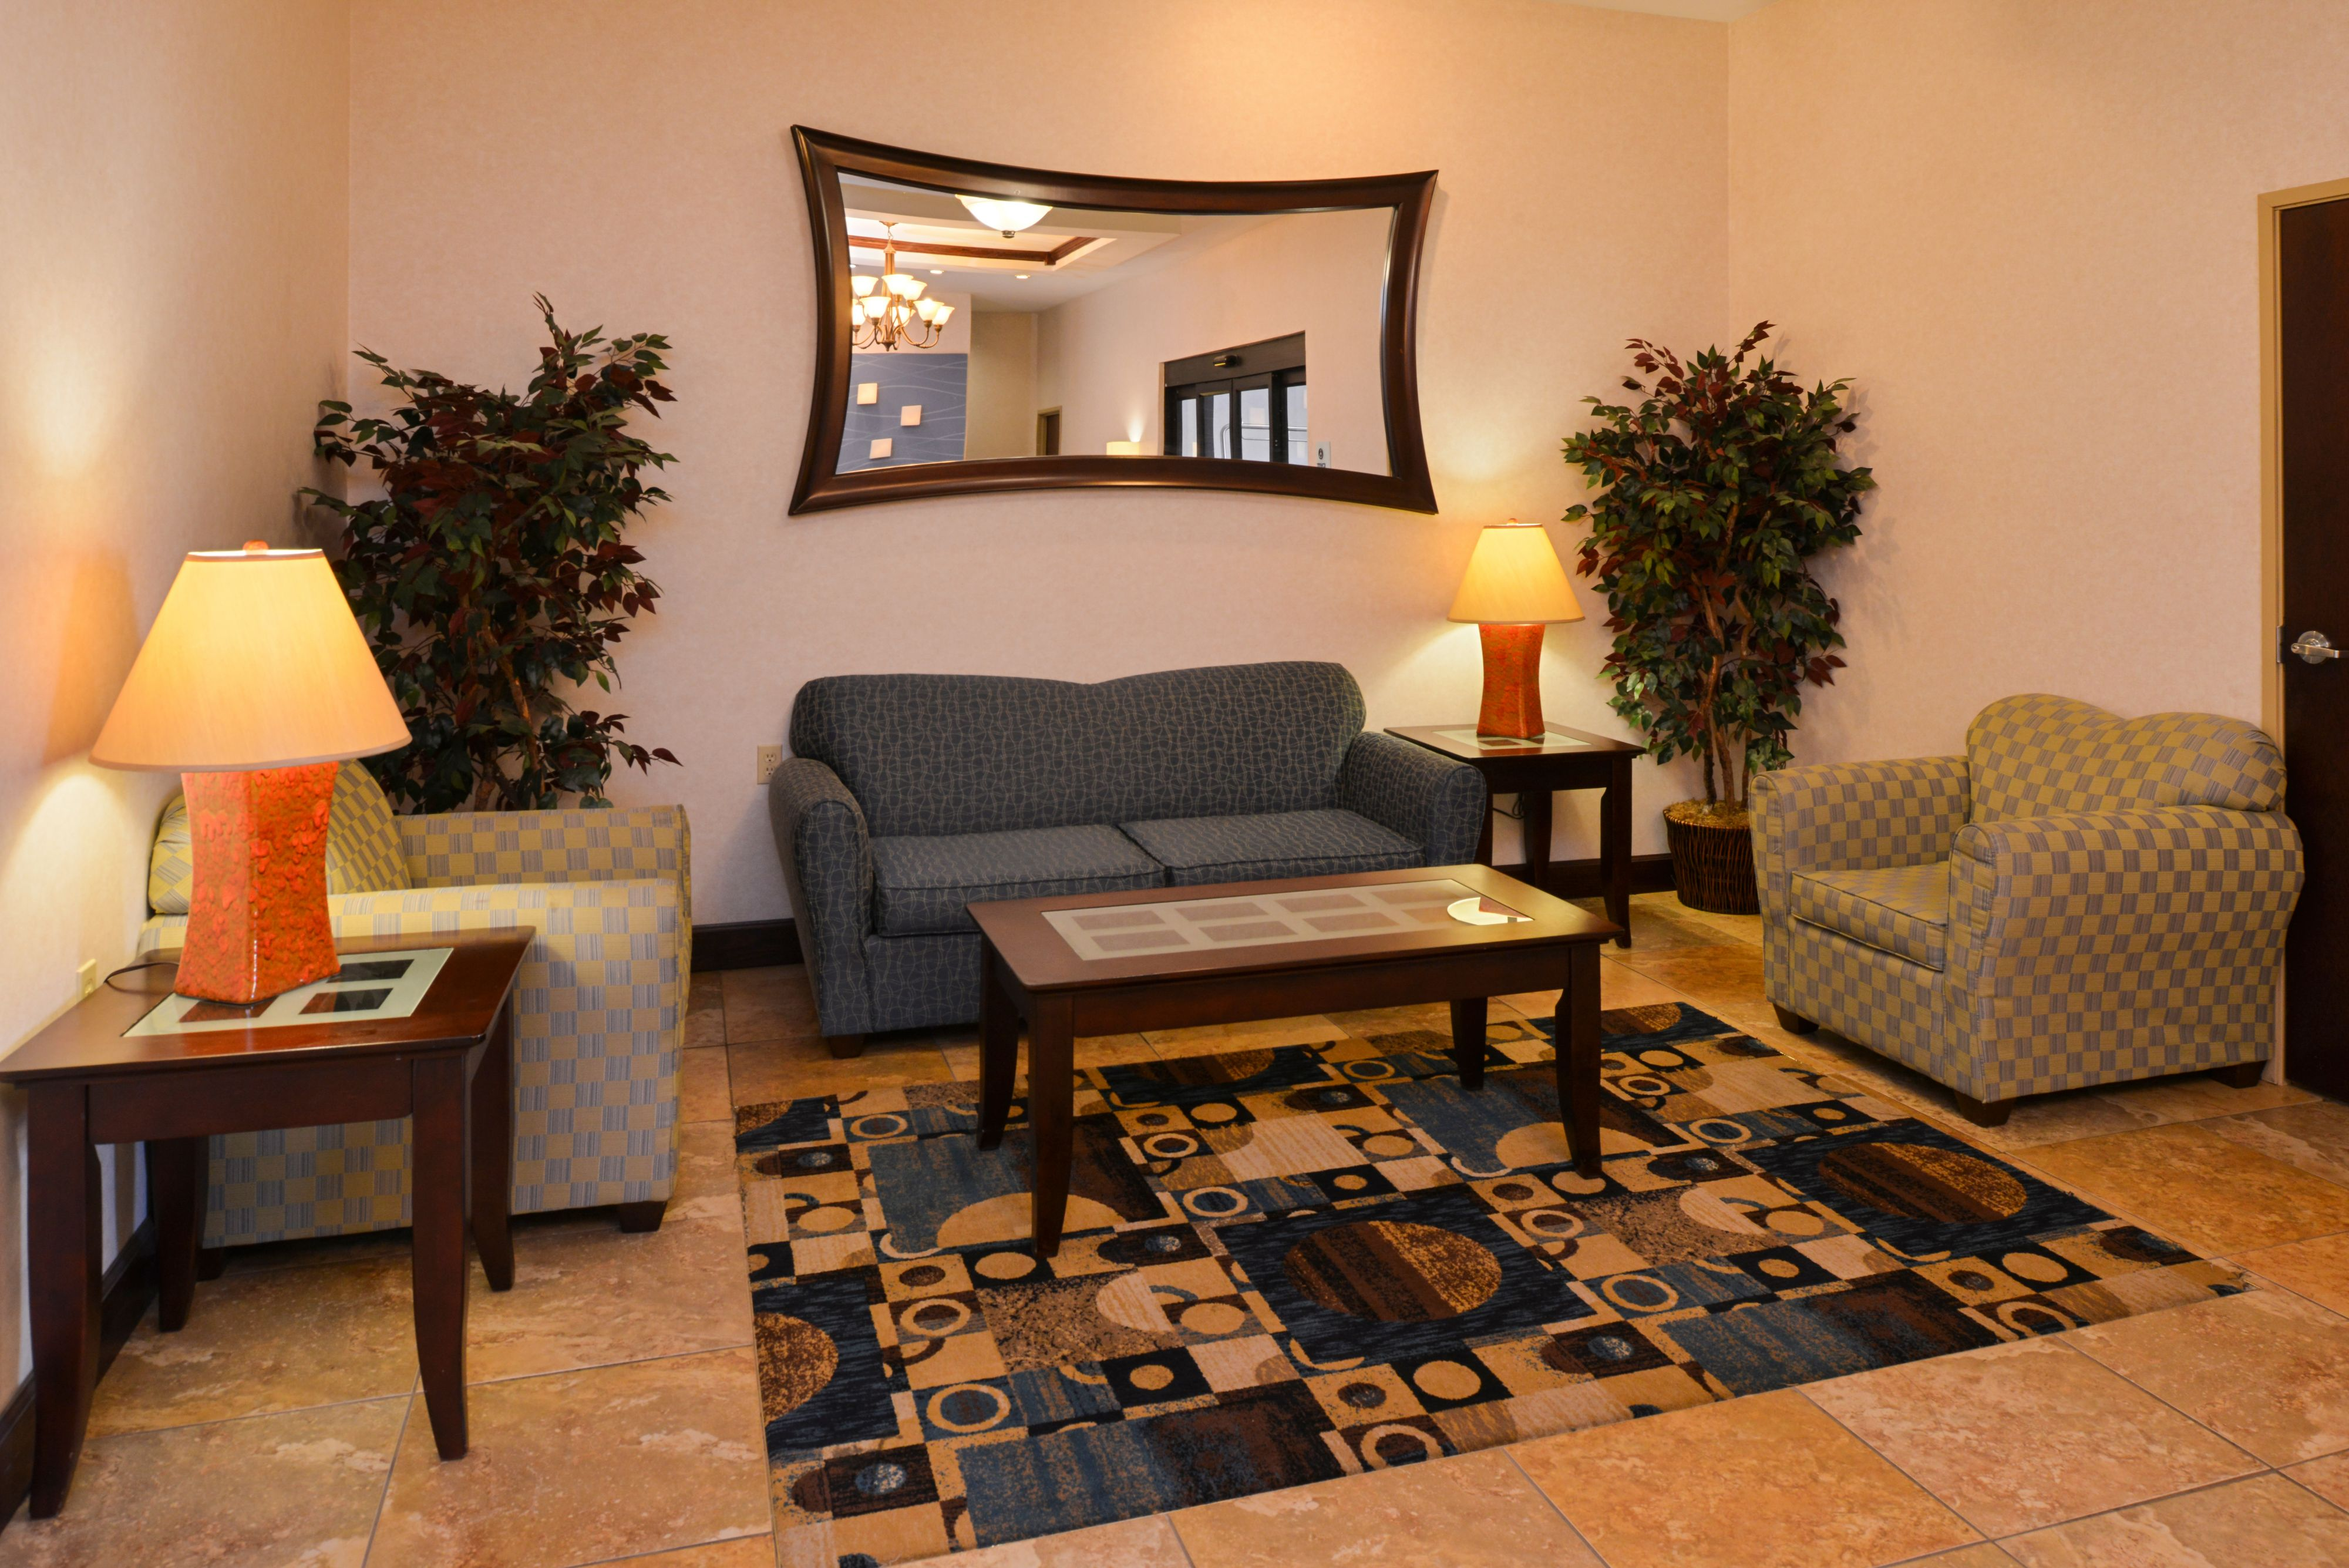 Holiday Inn Express & Suites White Haven - Poconos image 4